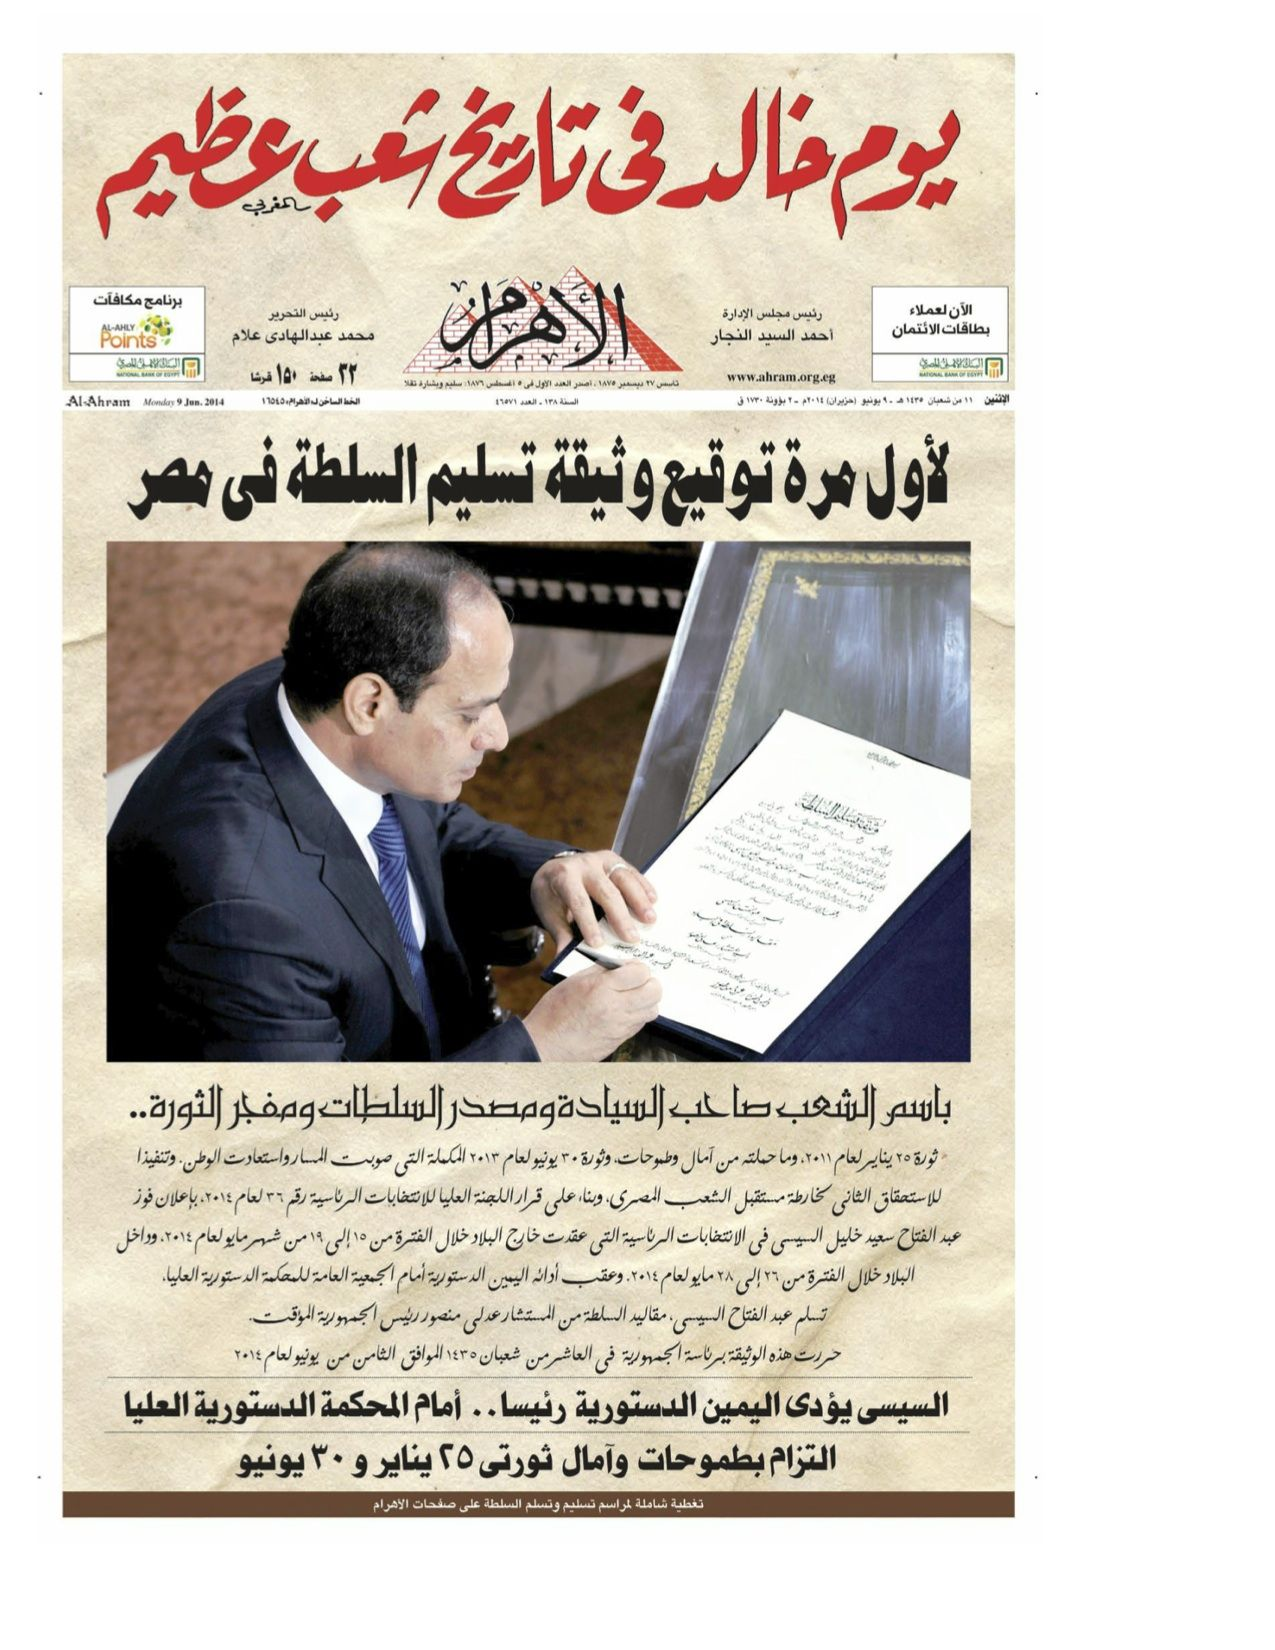 Ahram Cover - Red Letter Day